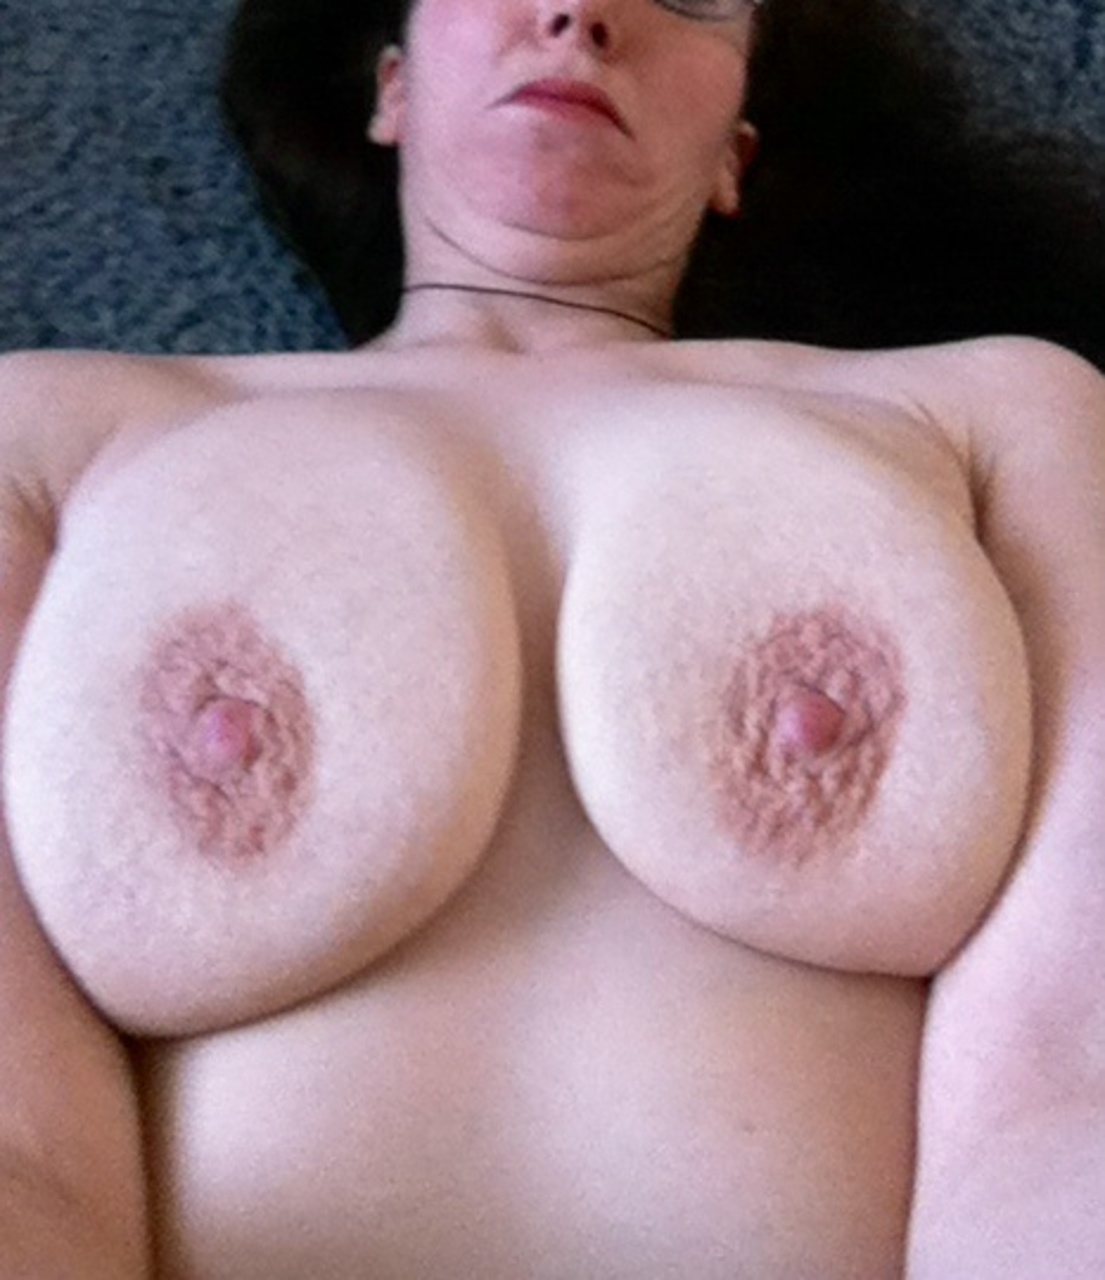 Not Chubby girls naked pix all for